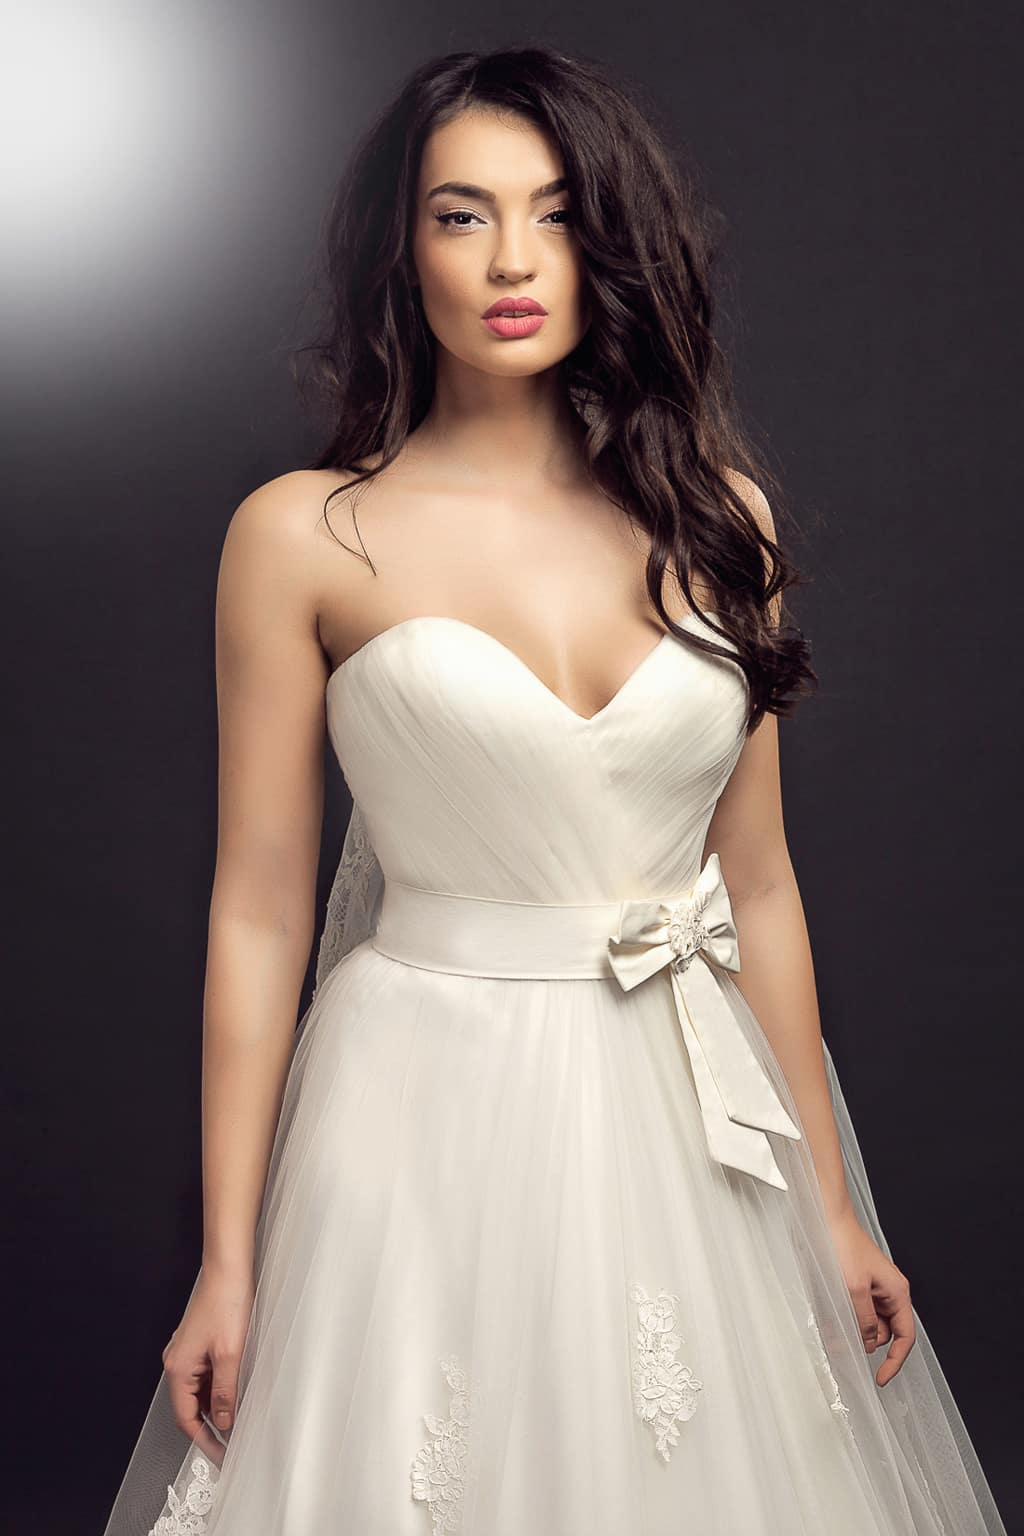 Palmer Model - Colectia Dreams - Adora Sposa (2)